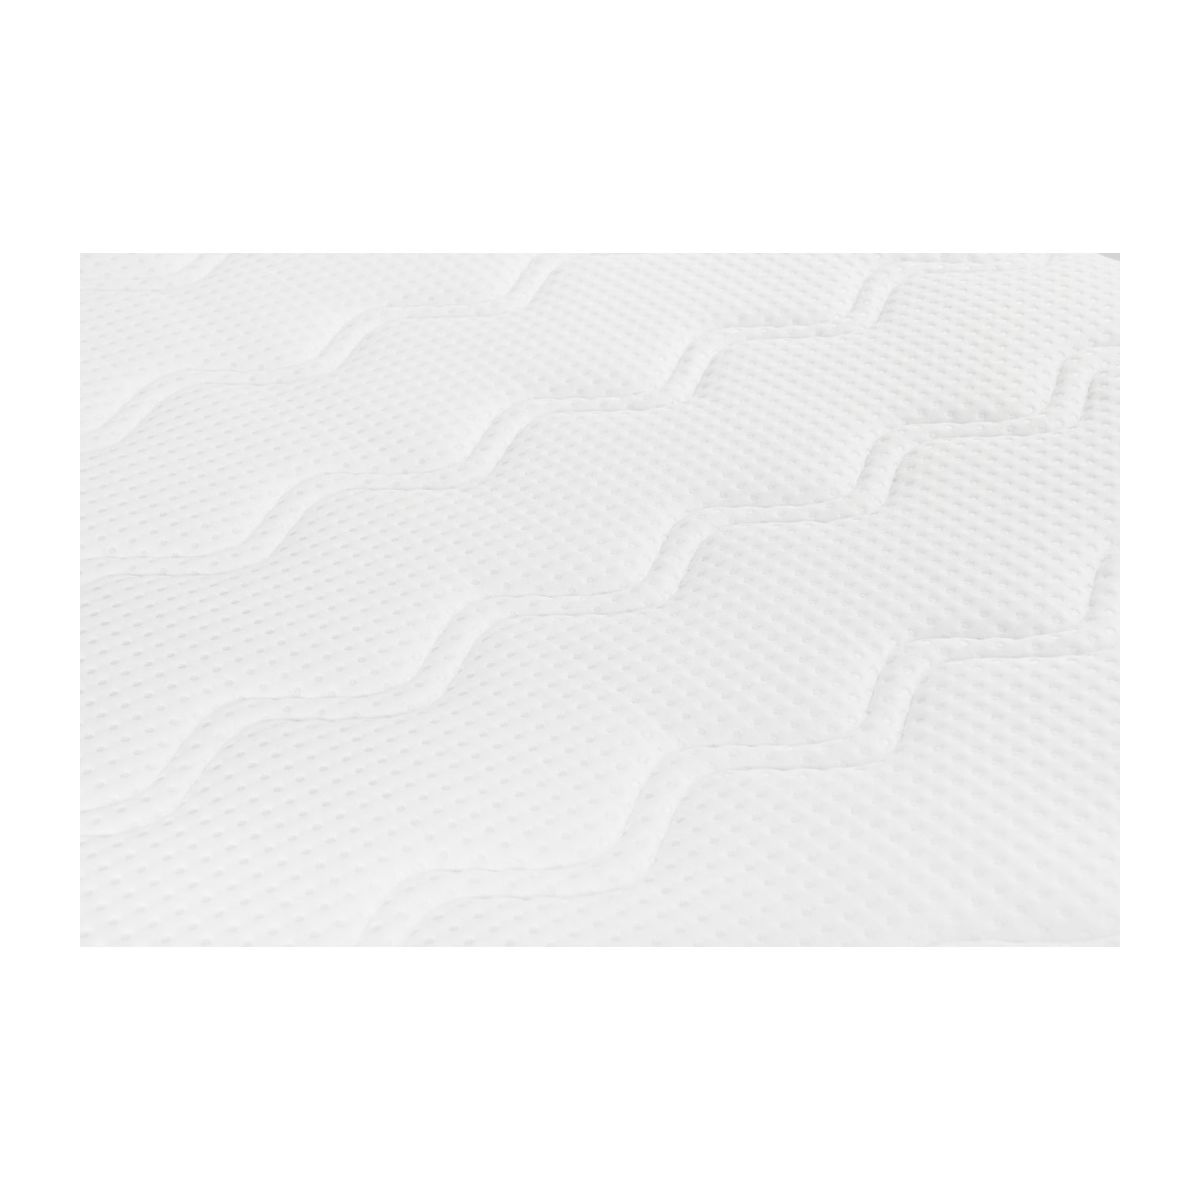 Spring mattress, width 20 cm, 140x200cm - firm support n°4